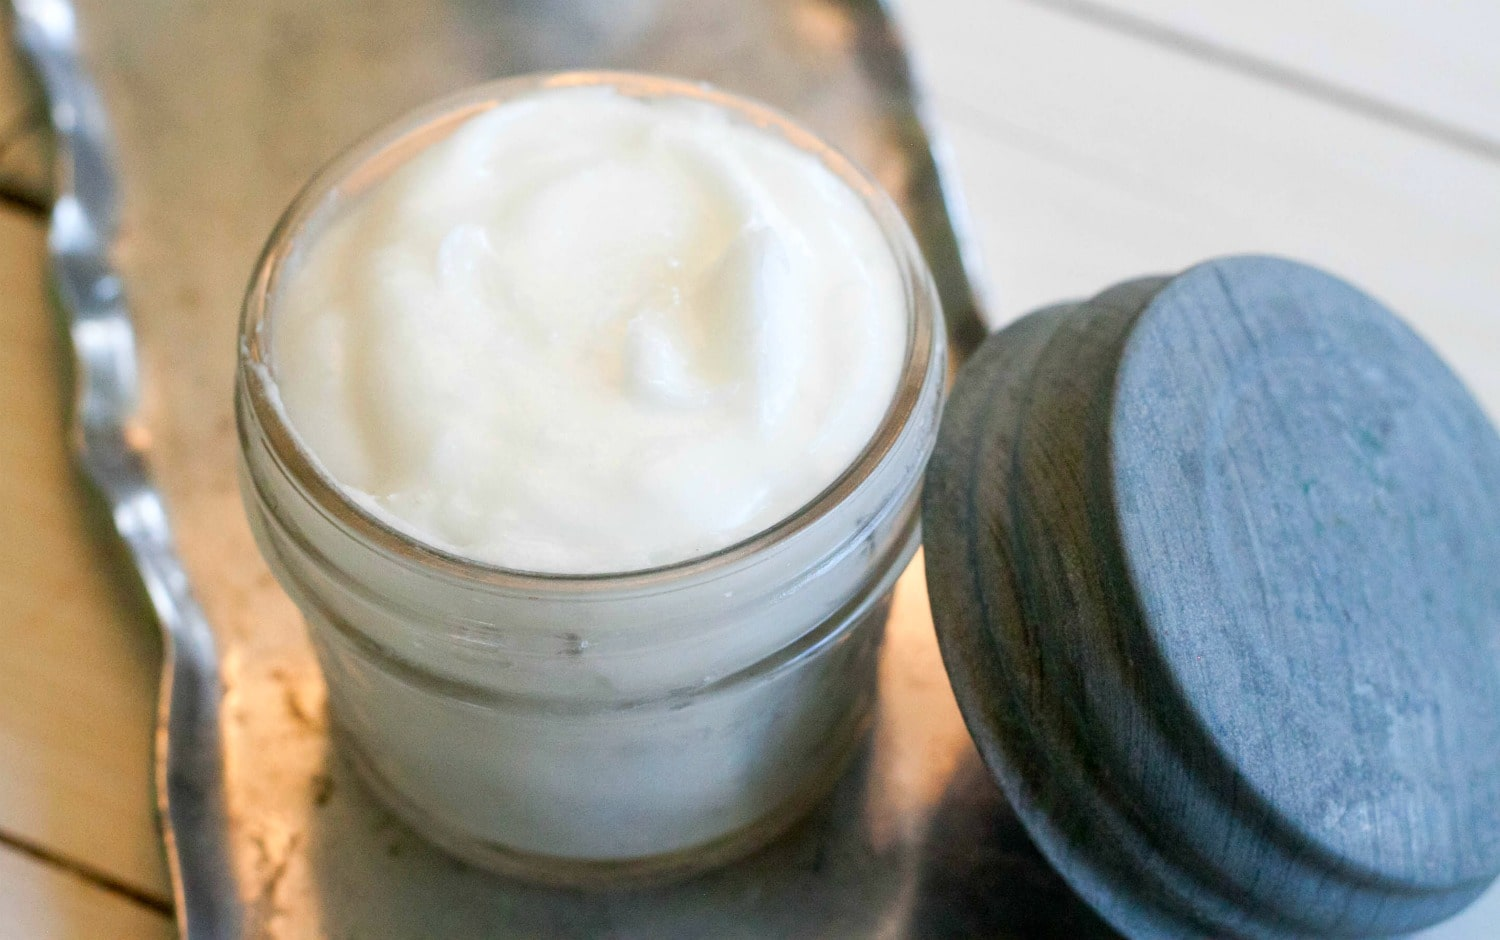 Easy DIY Whipped Coconut Oil Lotion